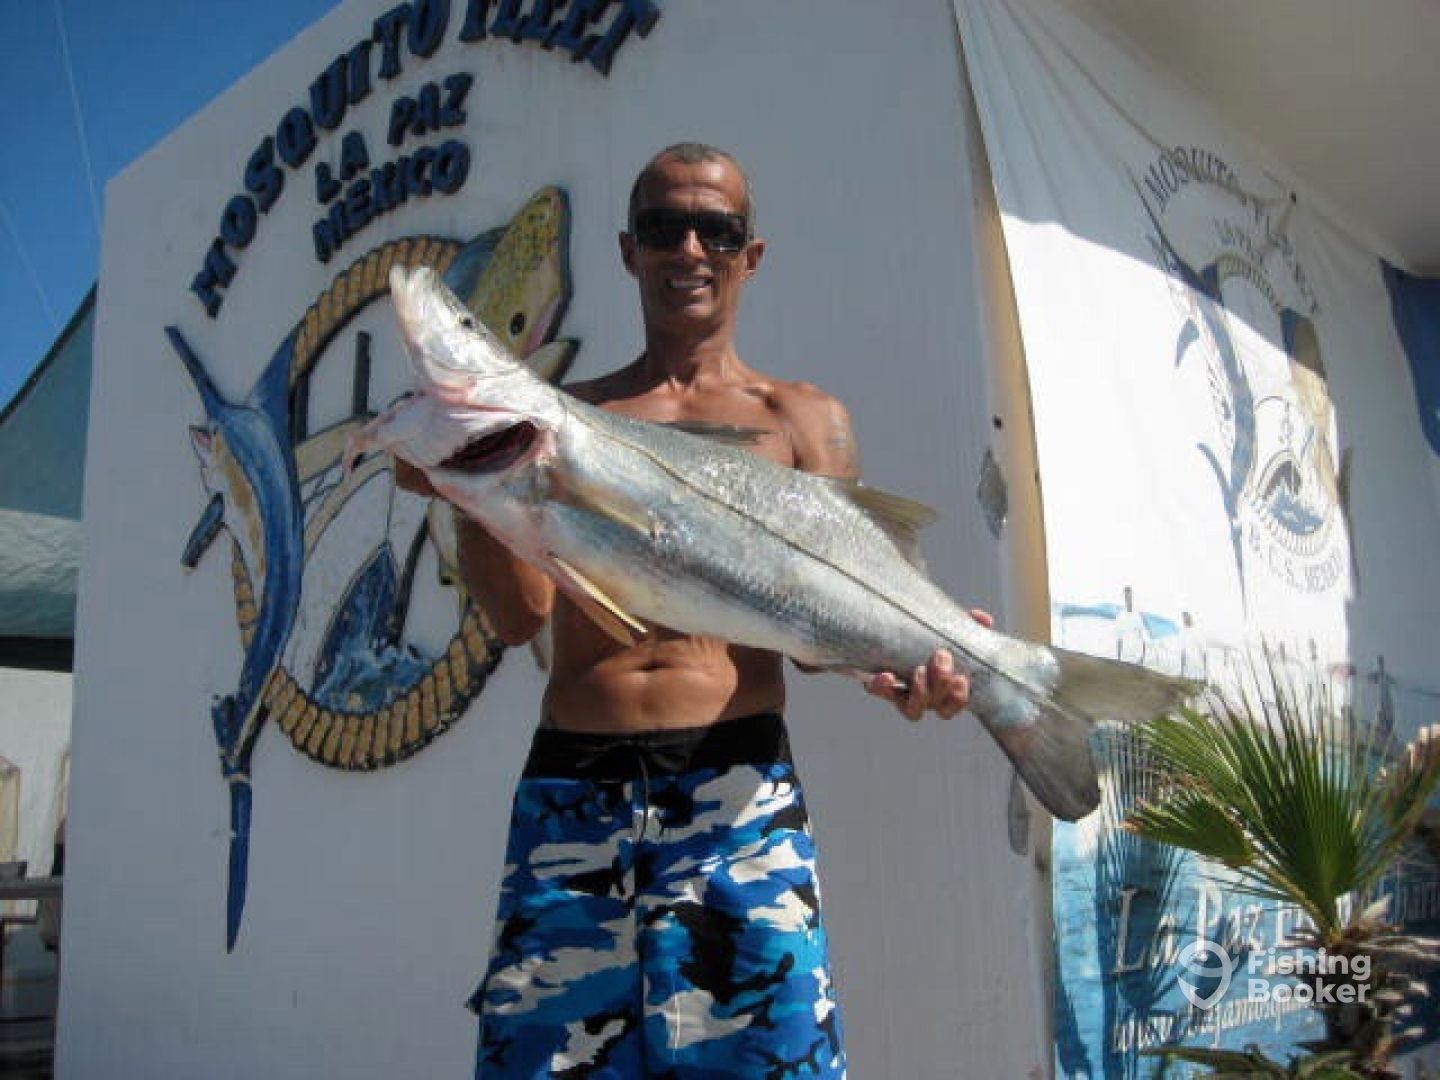 Snook fishing in La Paz